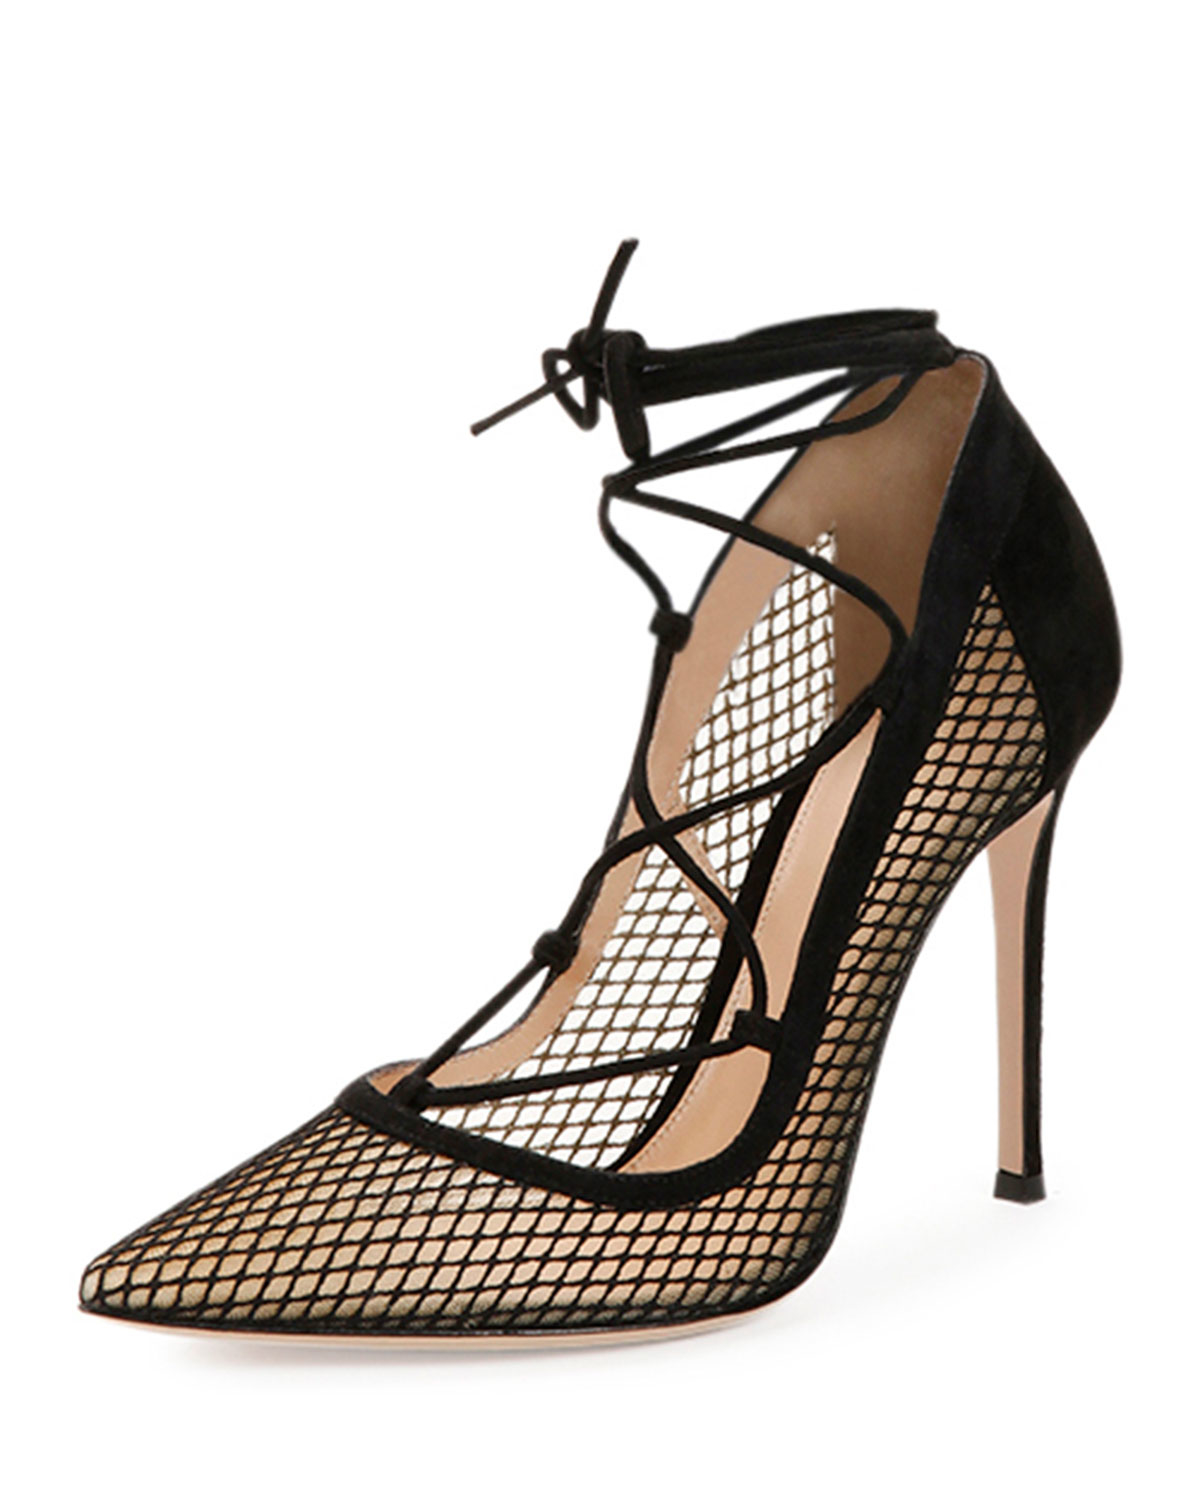 ff5828bf2266 Lyst - Gianvito Rossi Mesh Lace-Up Point-Toe Pump in Black